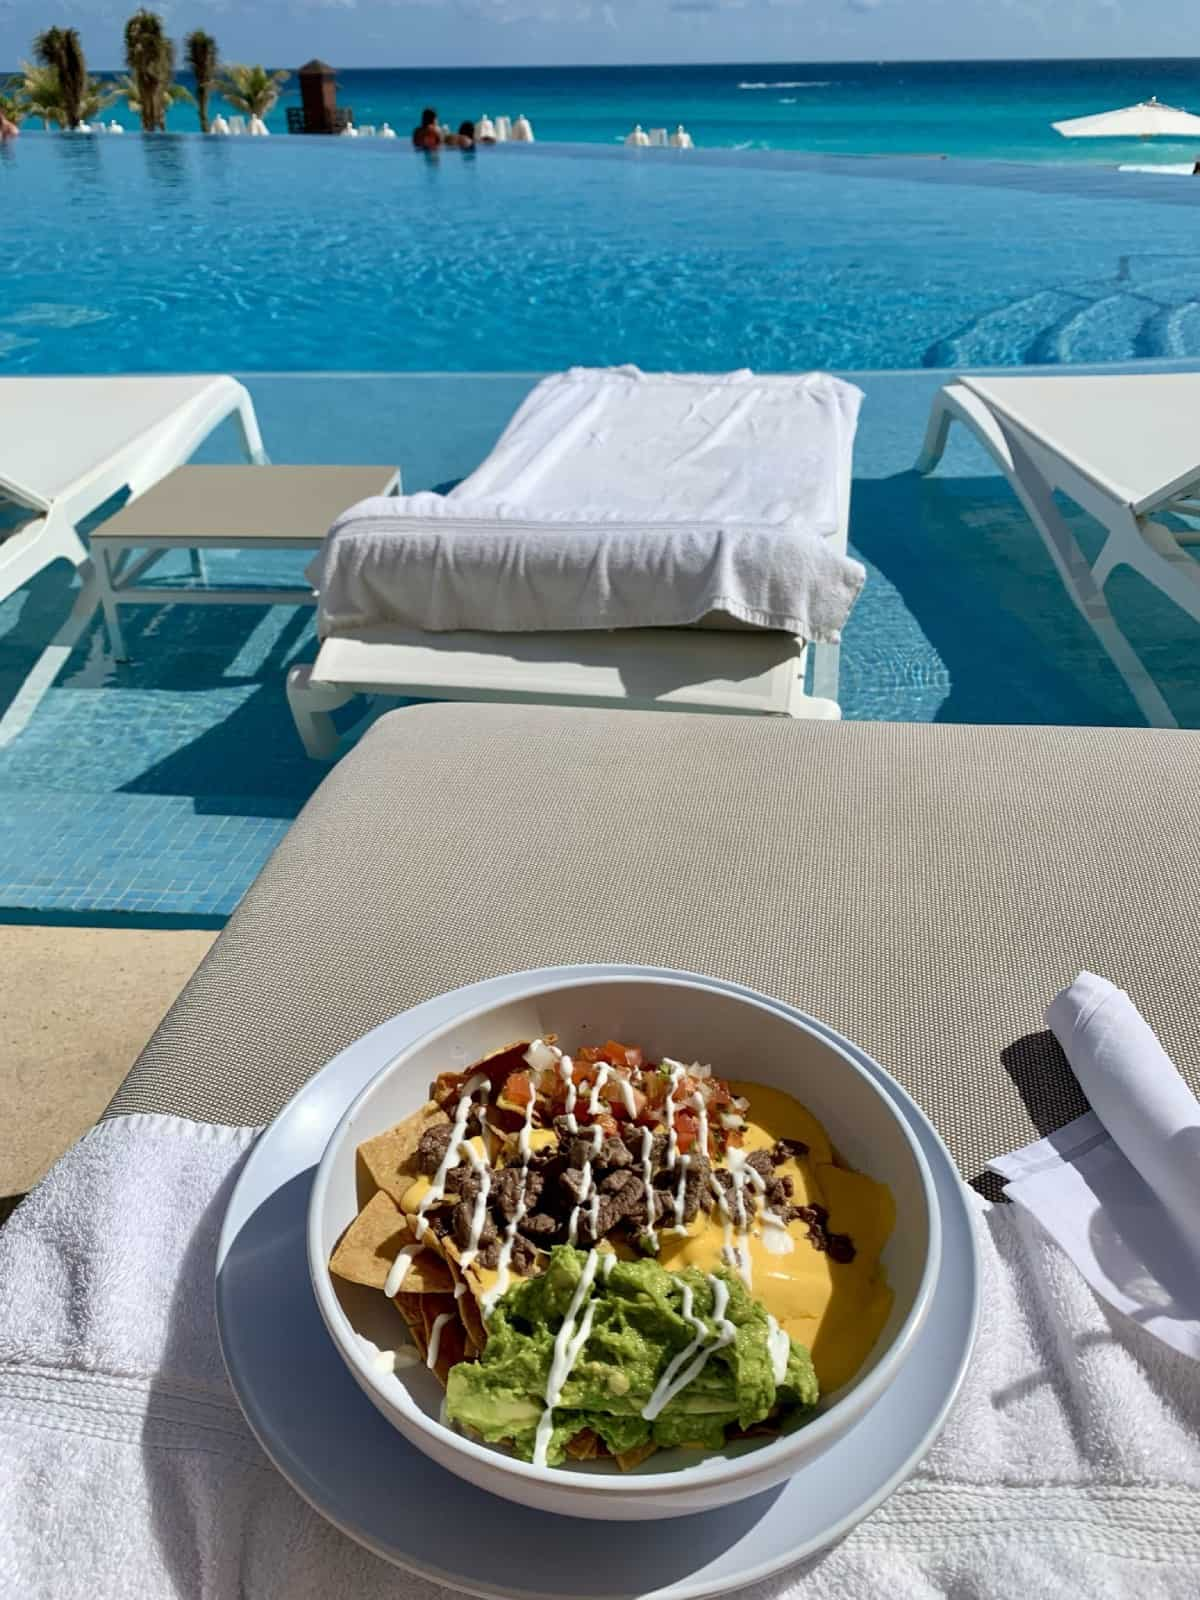 A Guide to LeBlanc Cancun Restaurants | I loved my stay at the LeBlanc Cancun resort, and wanted to provide a detailed review of the food and drink options...which restaurants were best, what dishes to avoid or make sure you get, and where to get the best coffee. This Mexico luxury resort was a wonderful experience! Best Mexico all-inclusive resorts, where to stay in Cancun. #leblanc #cancun #mexico #allinclusive